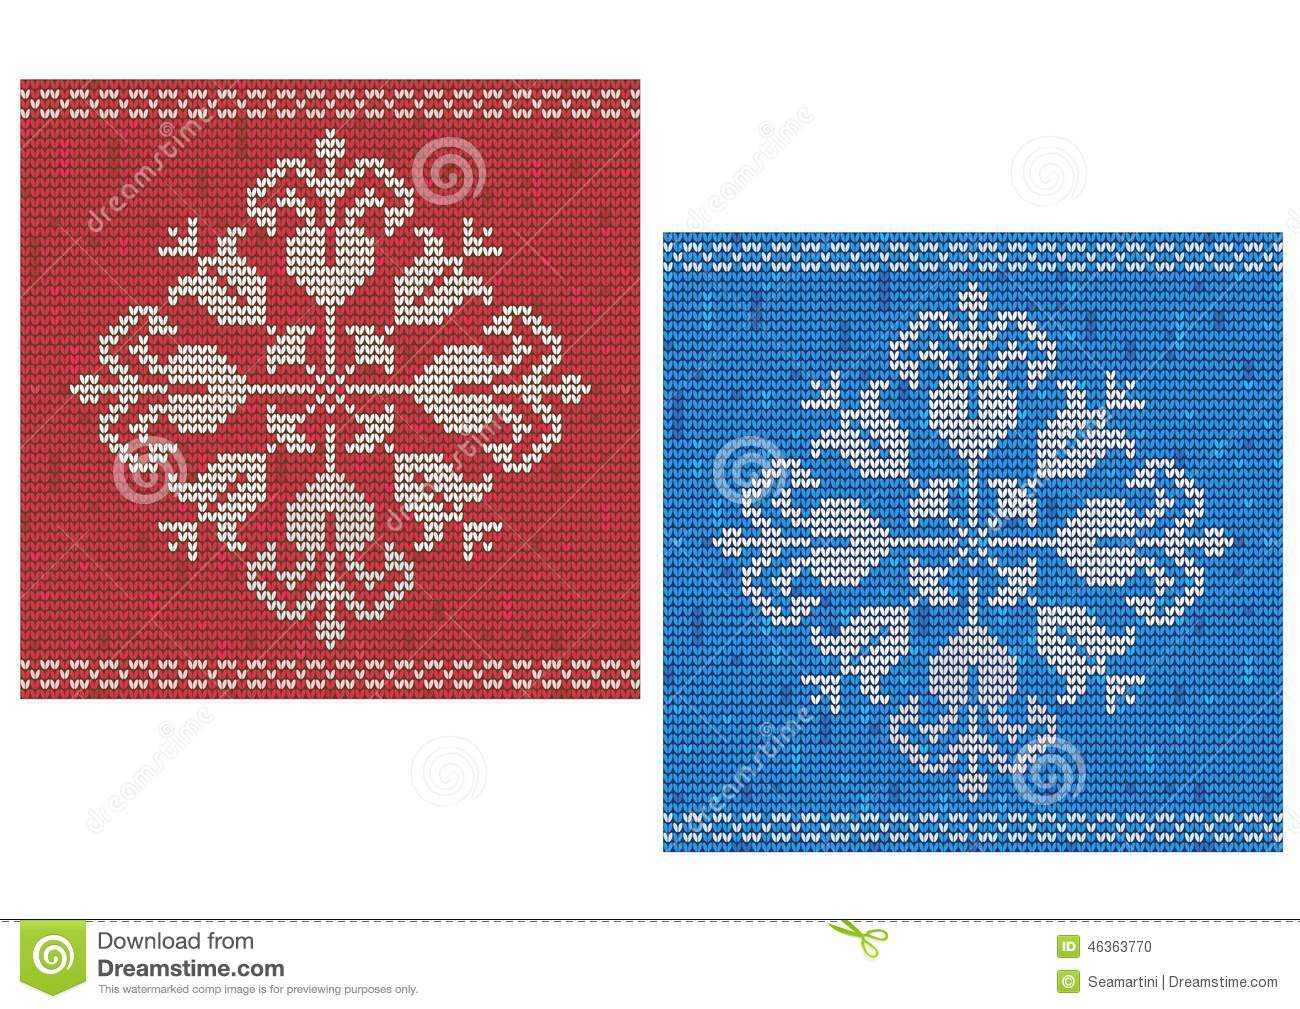 Snowflake knitted pattern stock vector. Illustration of ornament ...